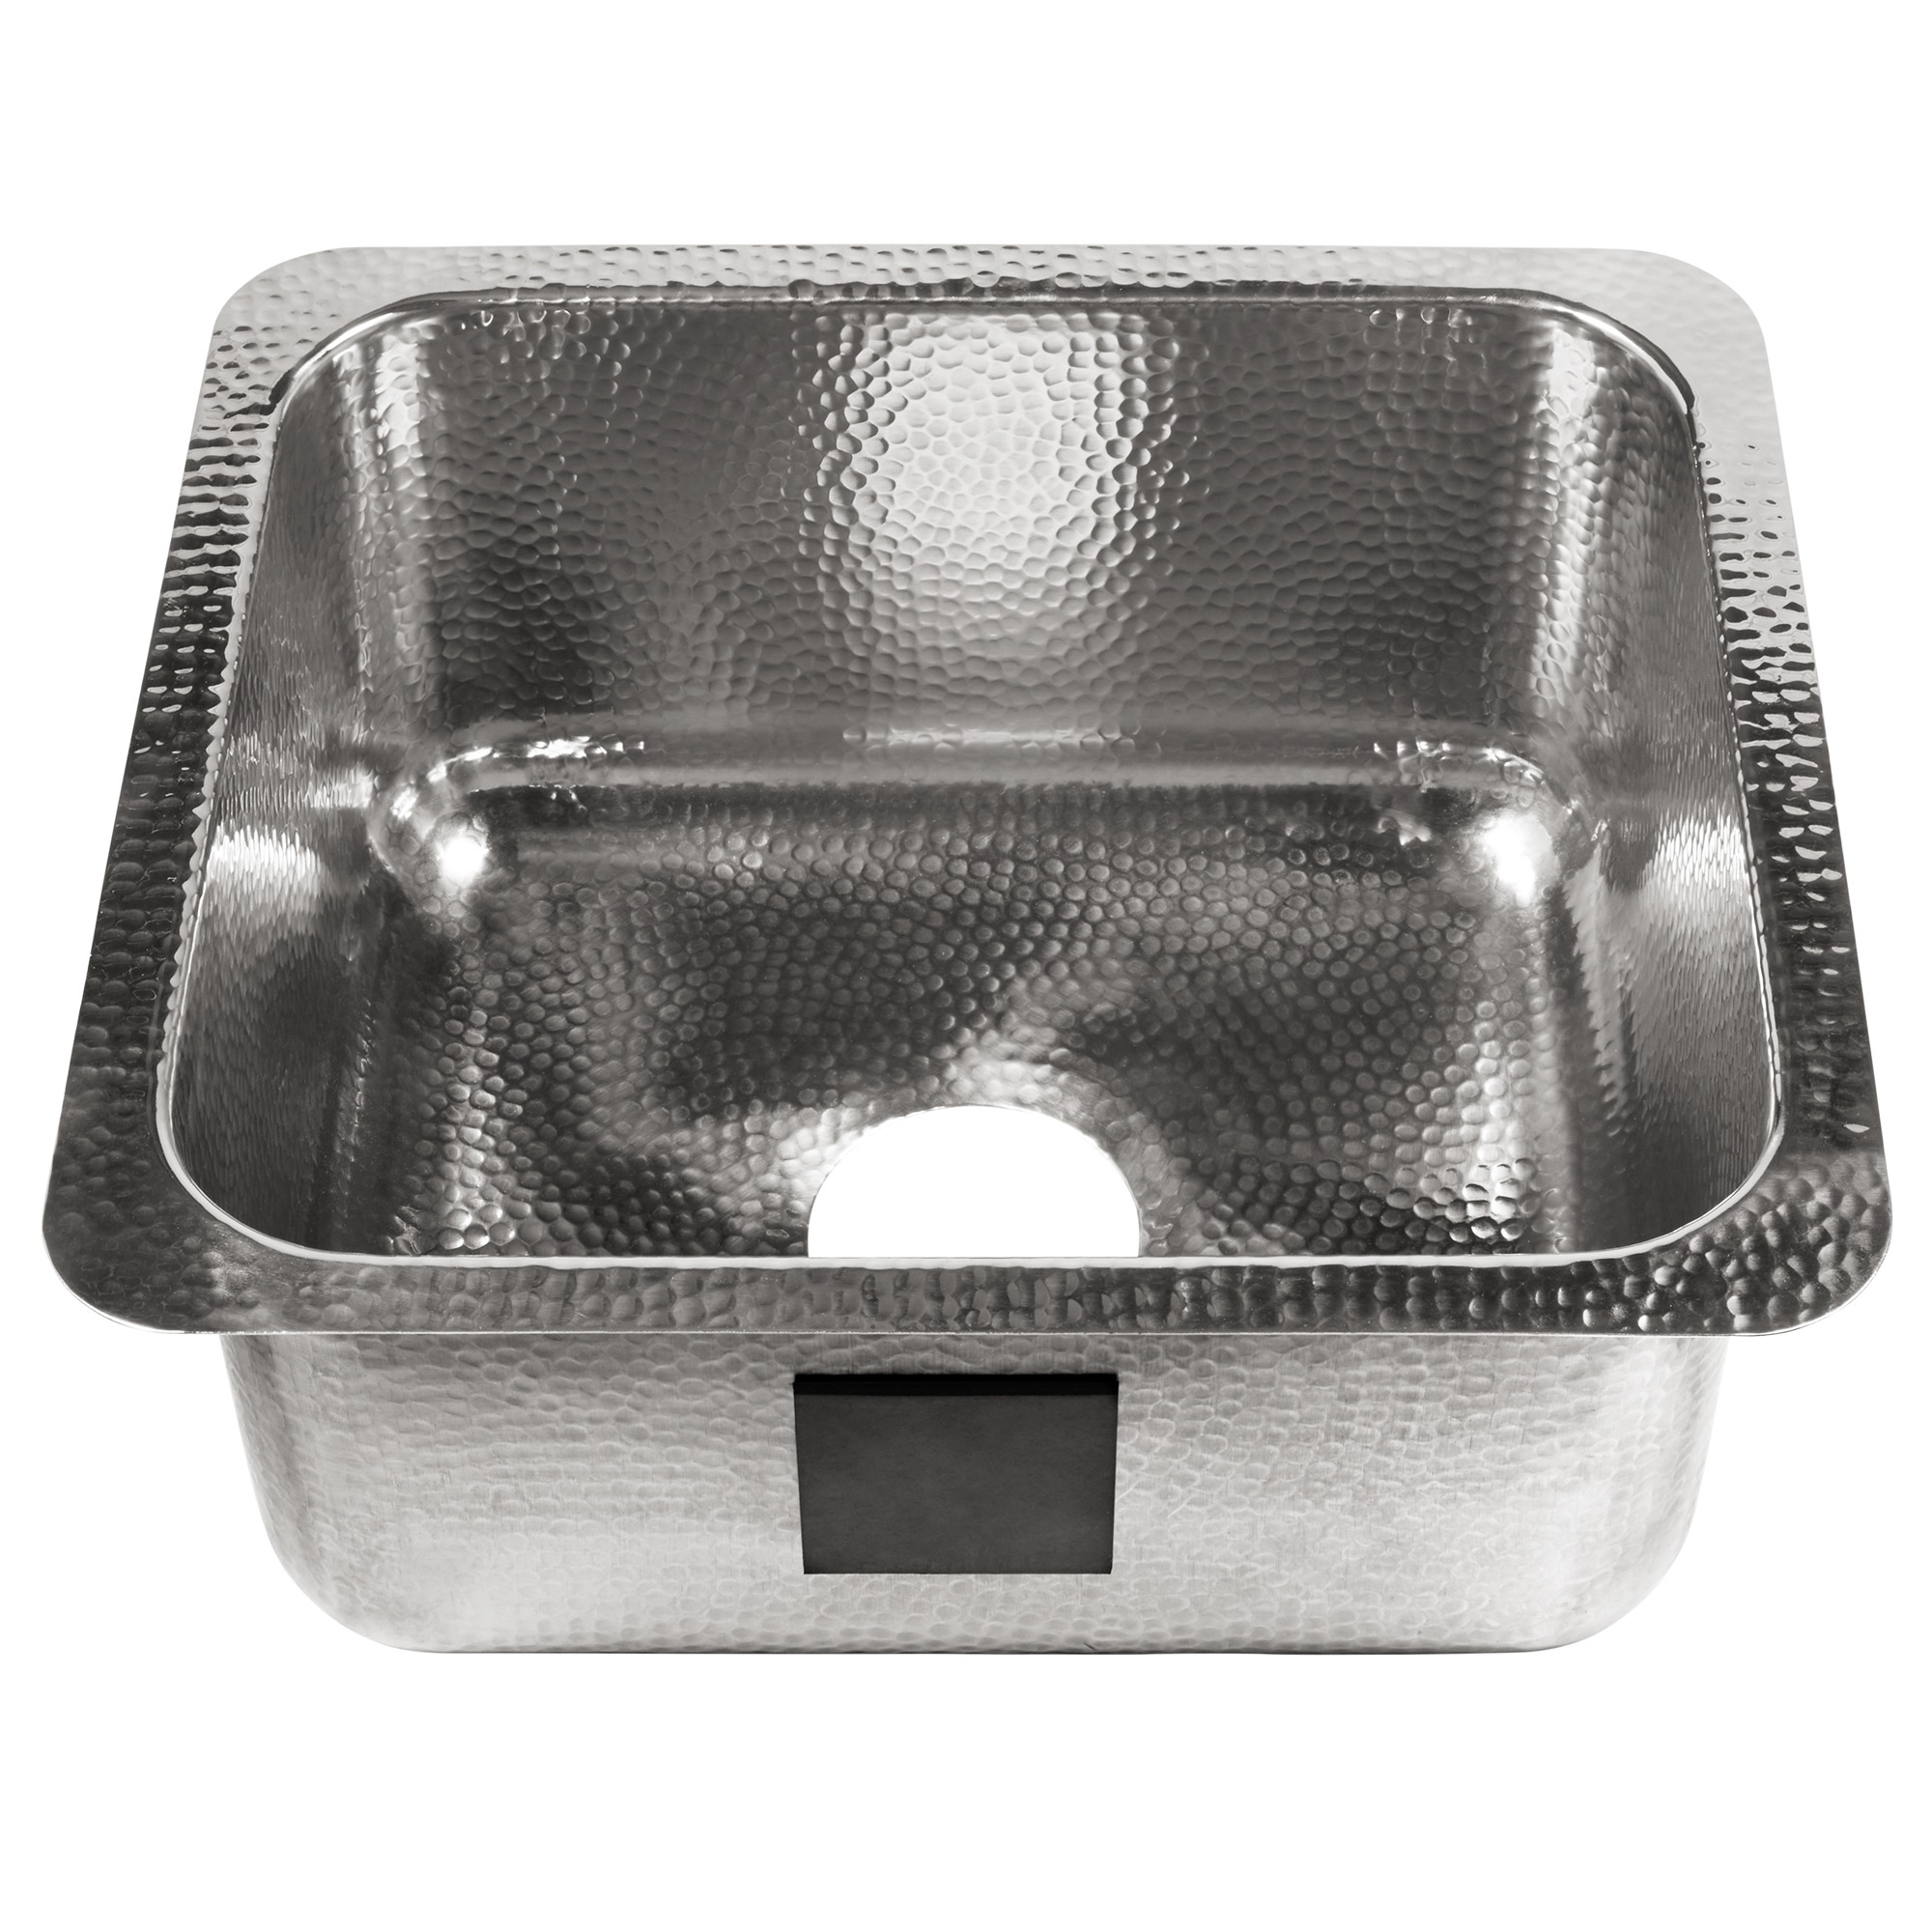 wilson crafted stainless steel in